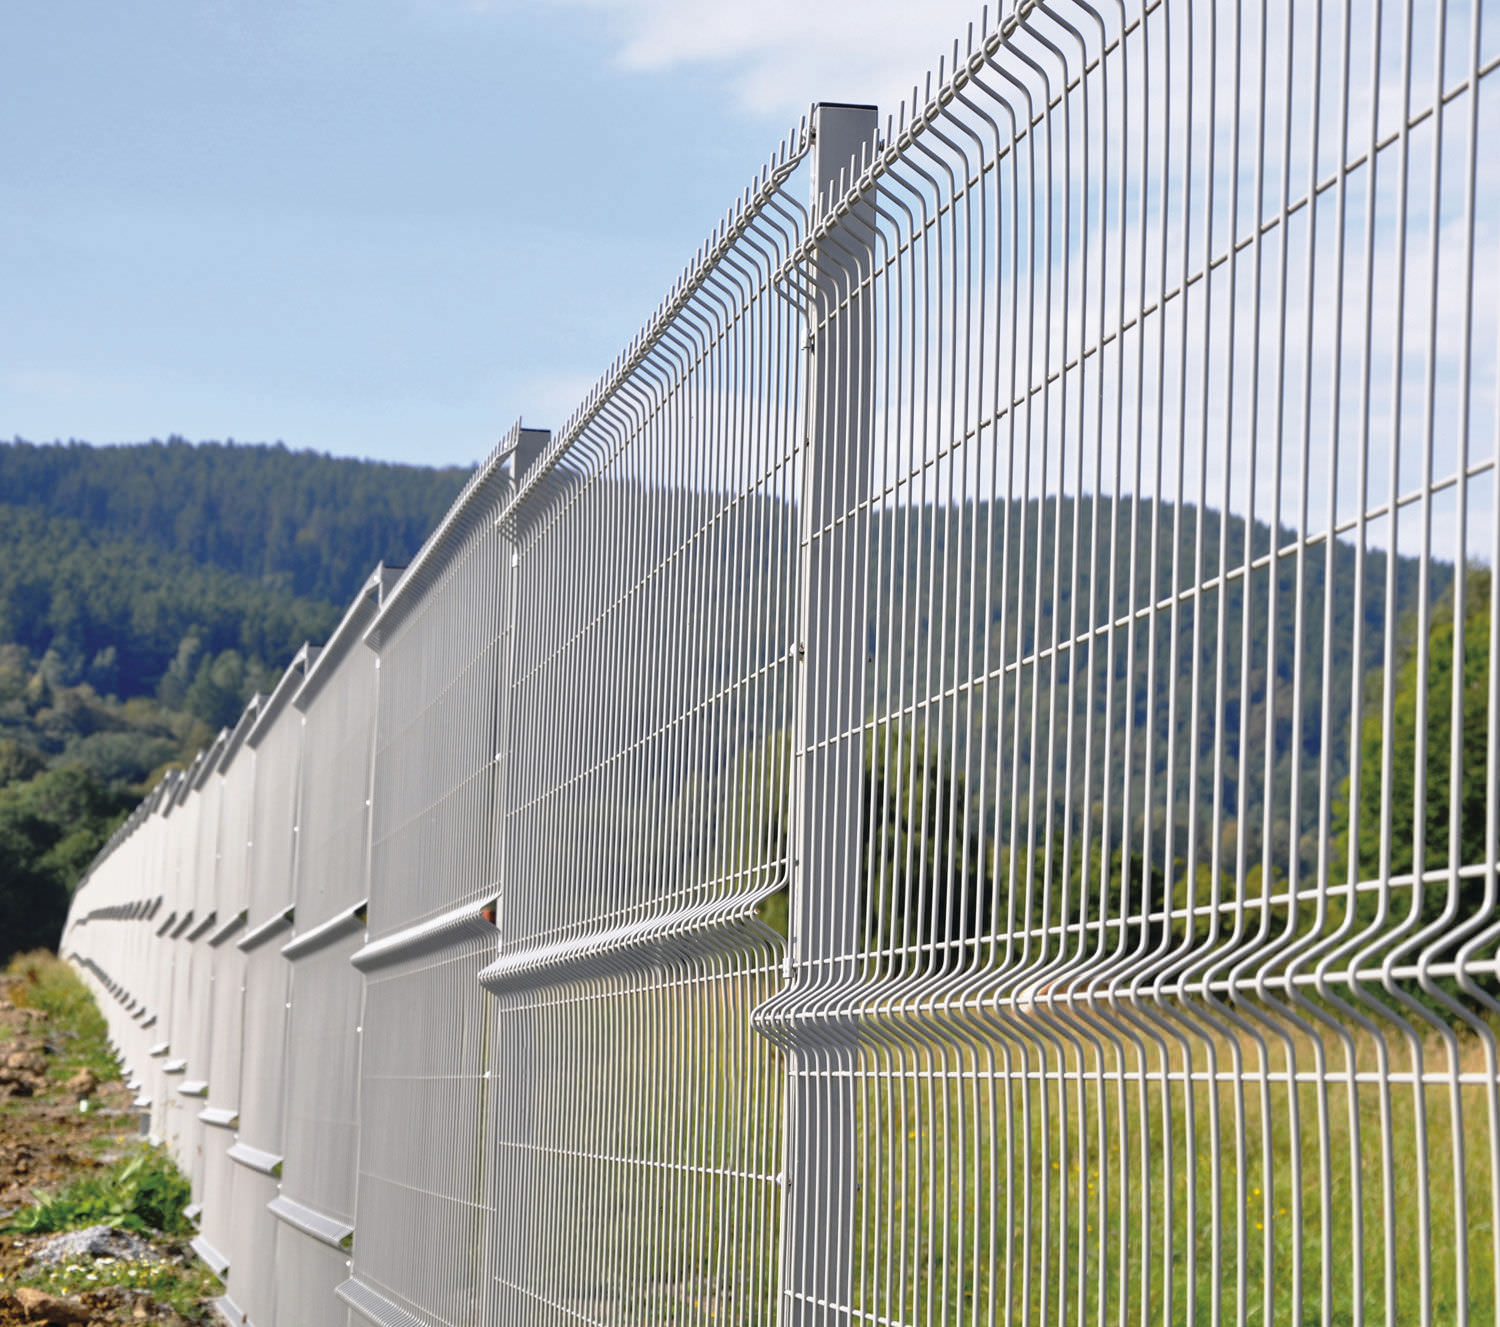 galvanized rigid mesh fencing